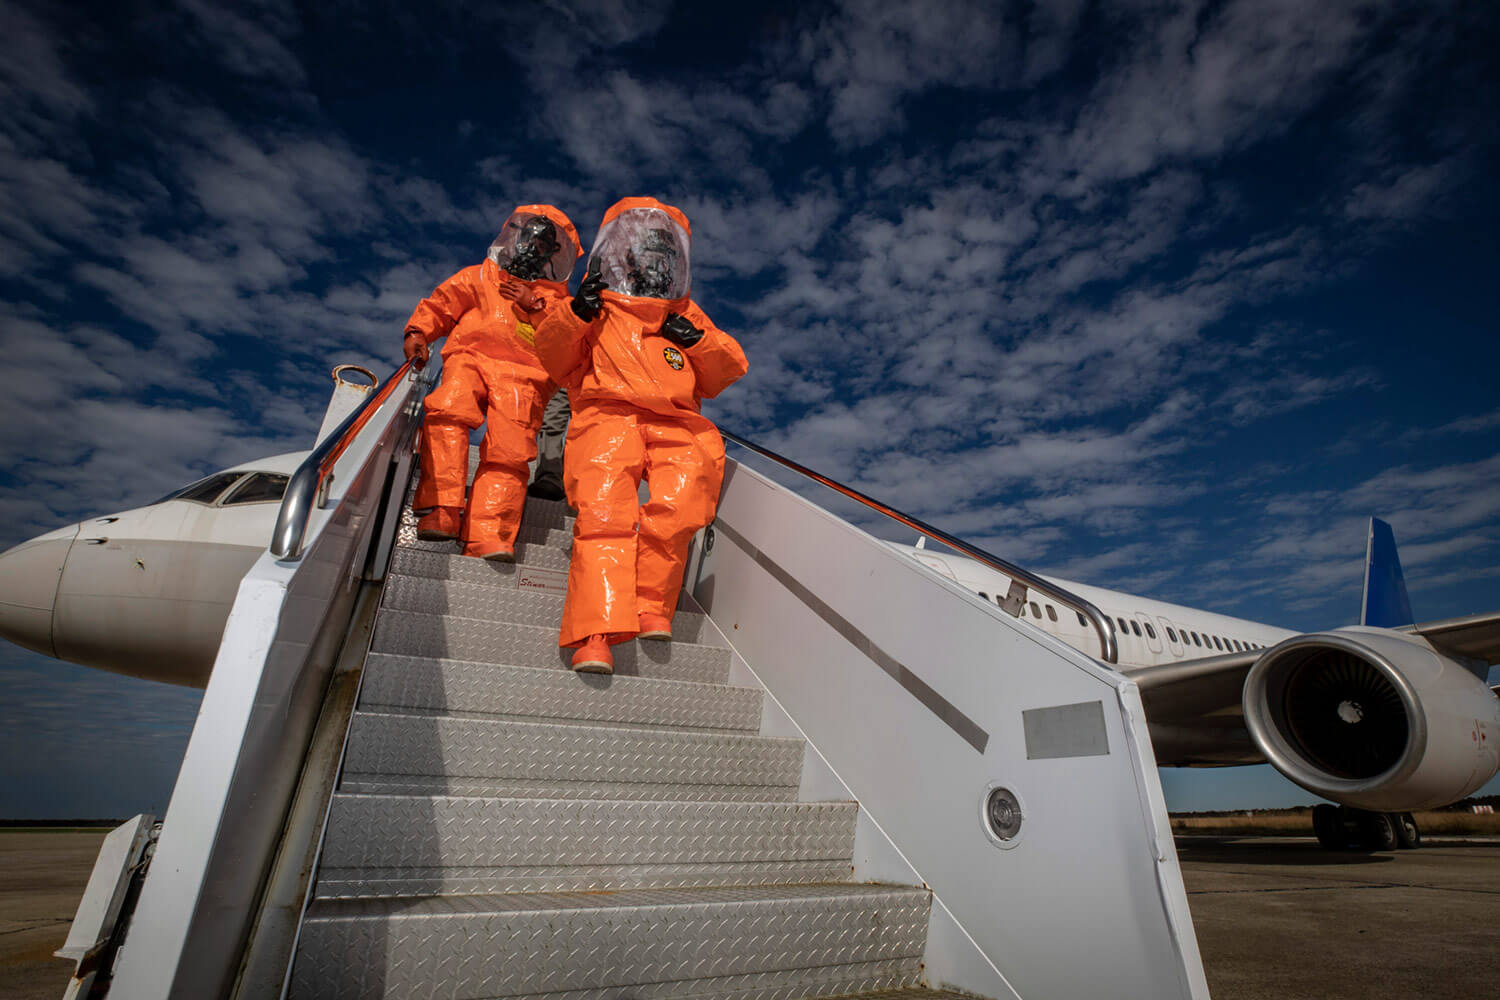 SGTs Mauricio Caceres and Cory Sweetman descend down air-stairs from an aircraft being used as part of a chemical, biological, radiological and nuclear defense exercise held at Atlantic City International Airport, N.J., in November of 2018. SGT Caceres and SGT Sweetman are with the 21st Weapons of Mass Destruction-Civil Support Team (21st WMD-CST), New Jersey National Guard. New Jersey National Guard photo by MSgt Matt Hecht